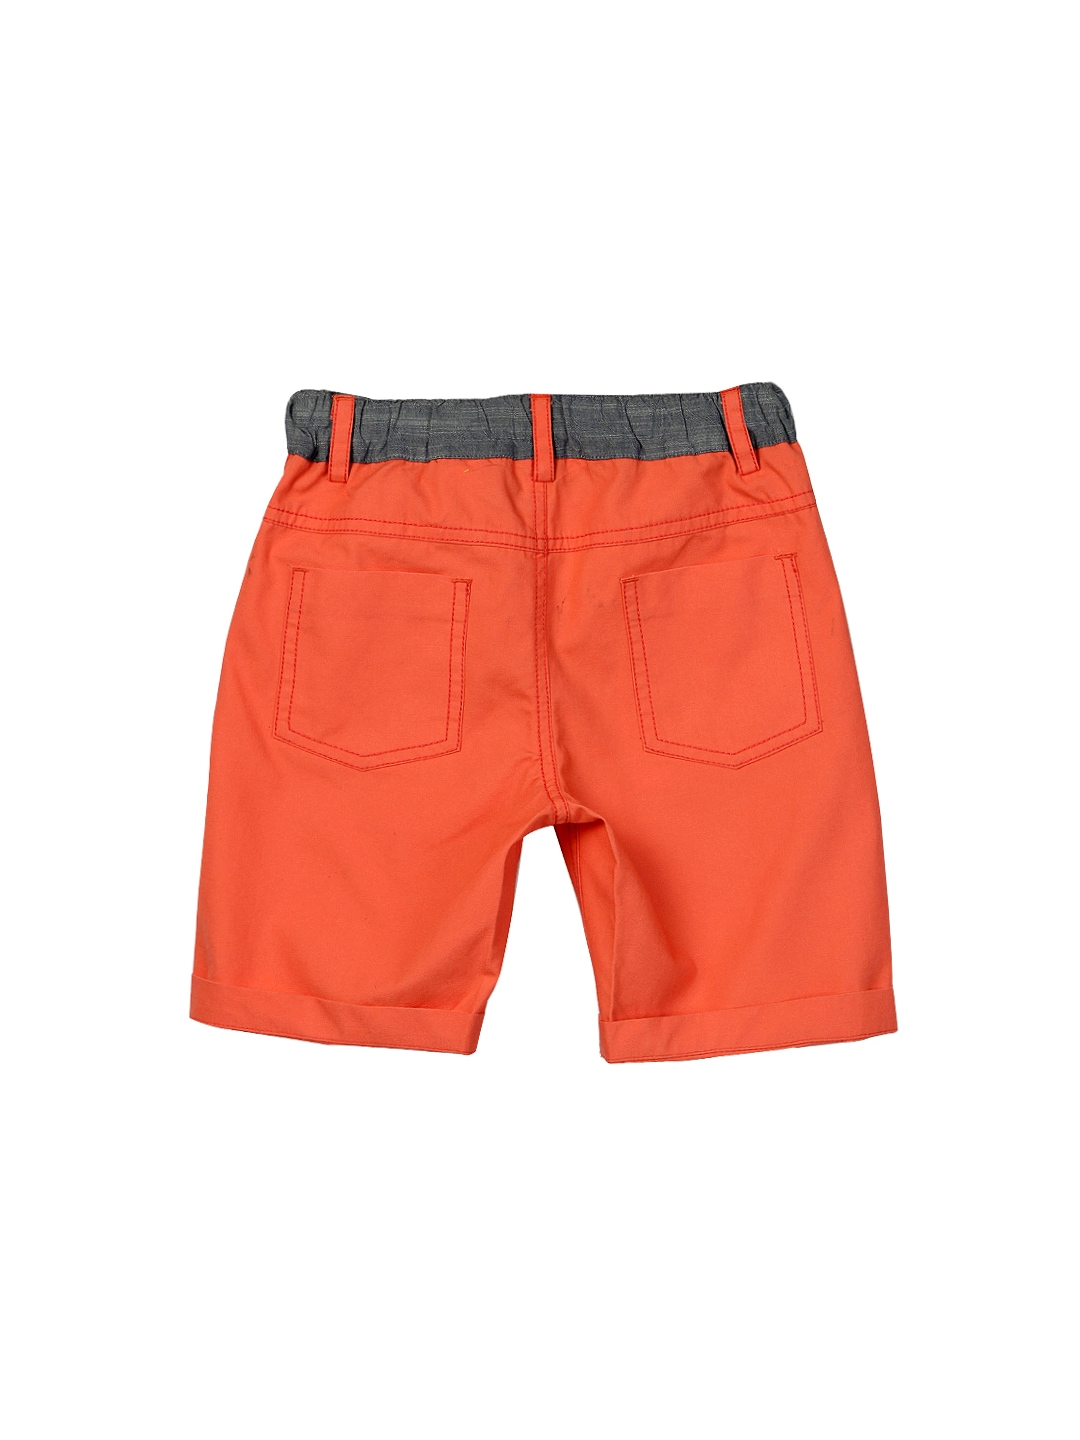 Take a look at our Shorts for Boys. With bold new colours and styles for Winter , we think you will be as delighted by our new range as we are.